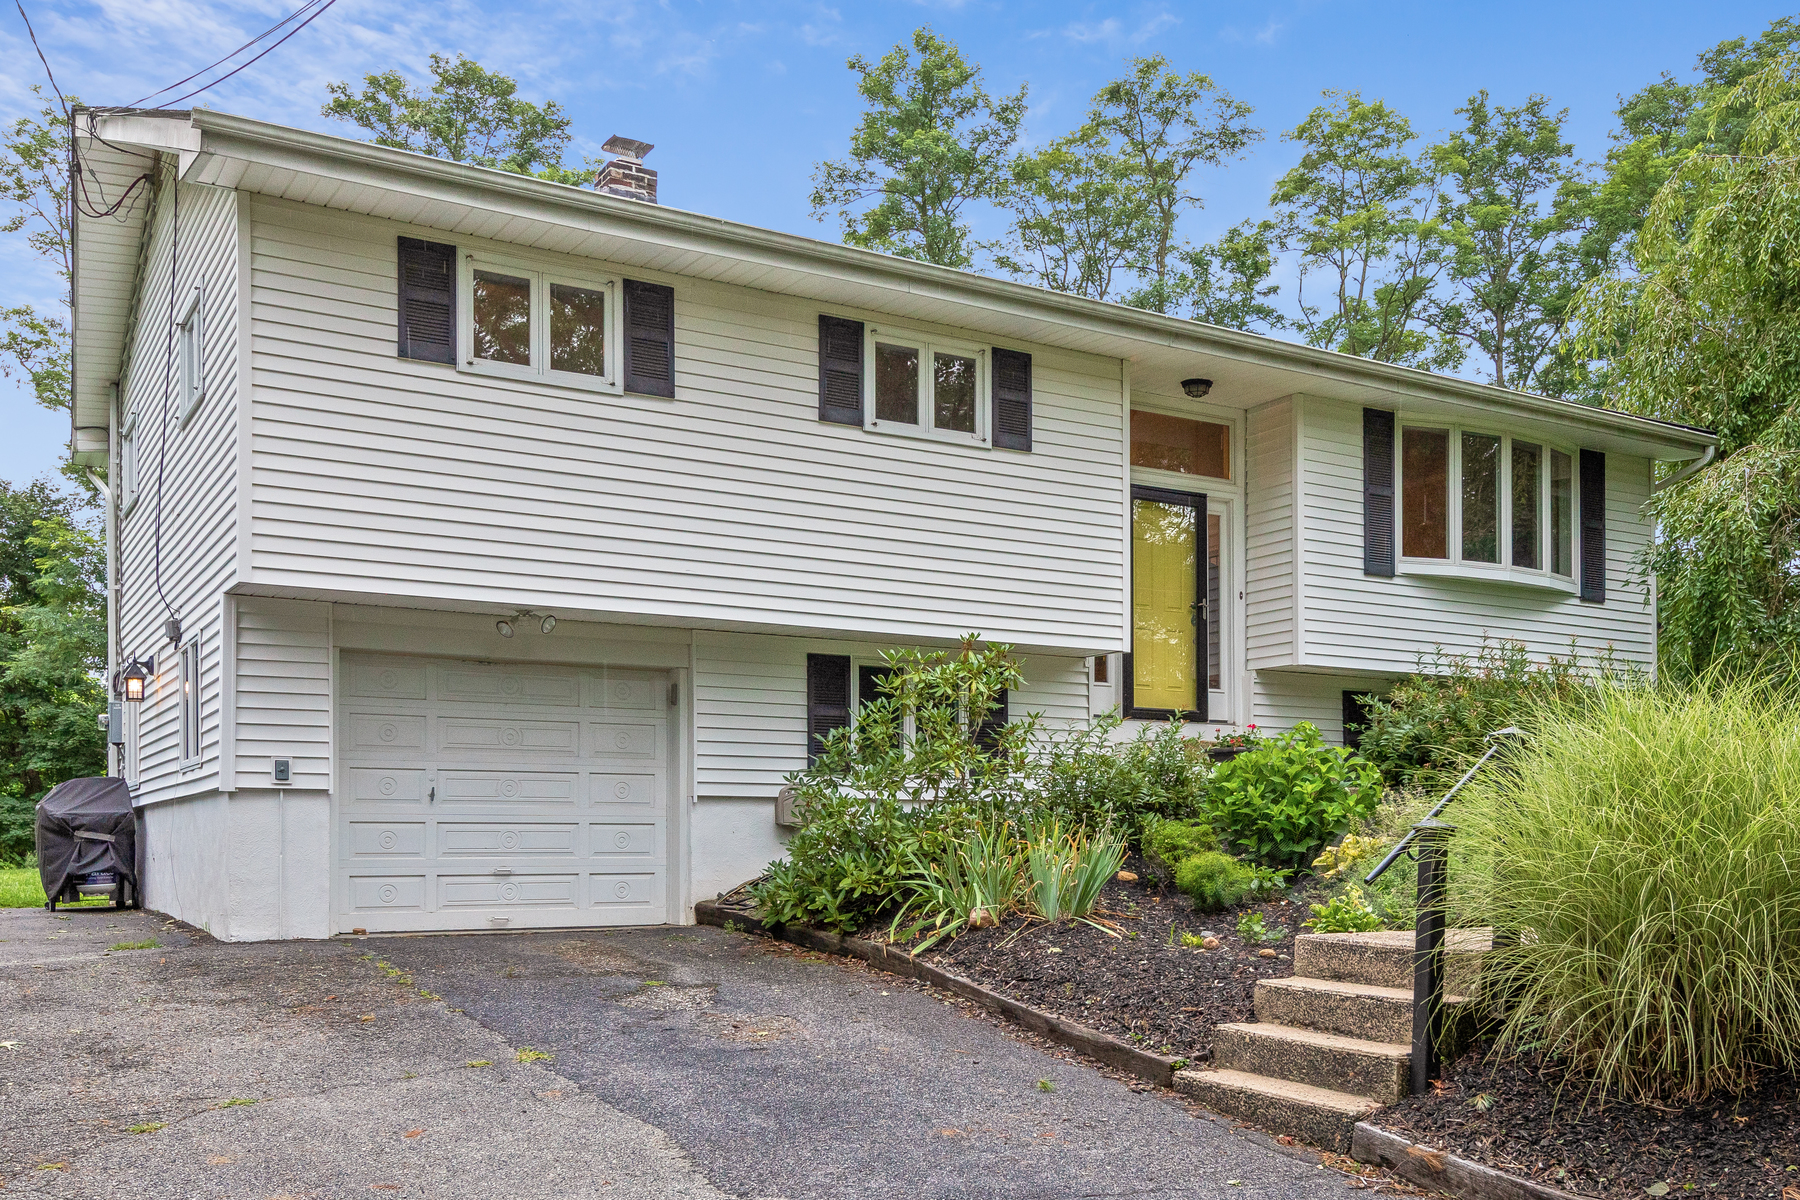 Single Family Homes for Active at Move In Ready 40 Ironia Road Chester Township, New Jersey 07869 United States